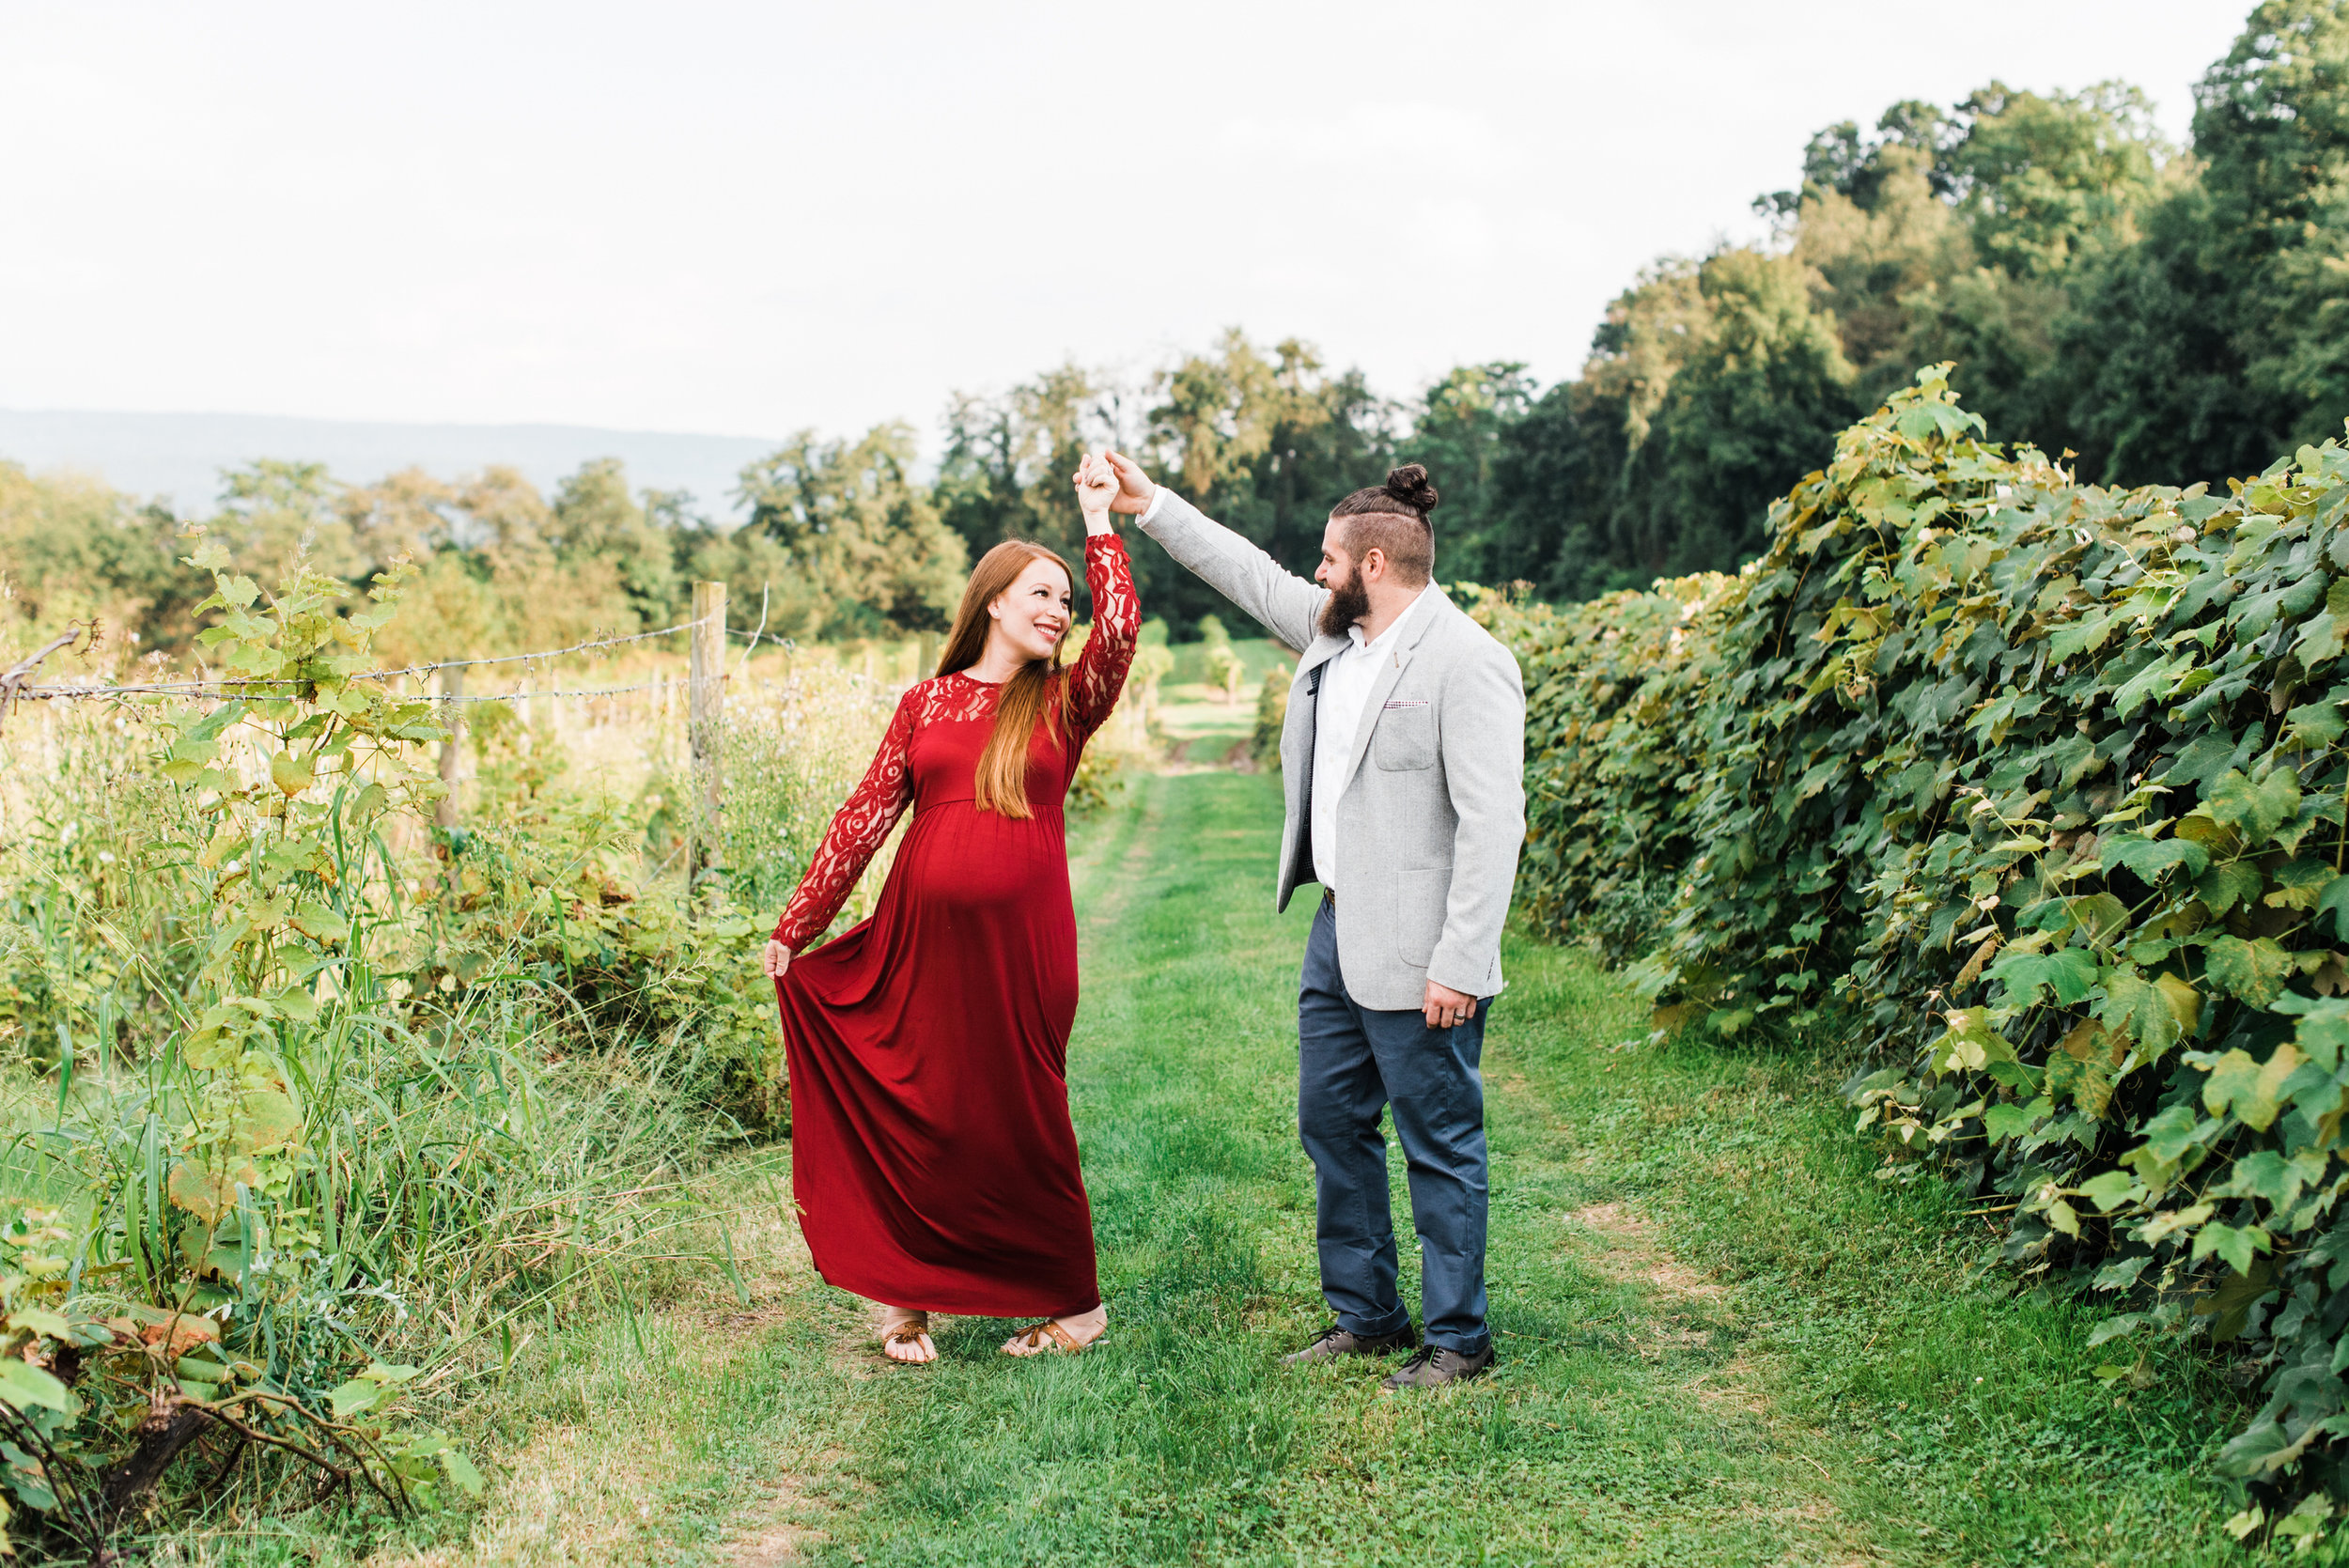 pittsburgh-maternity-photographers-winery-apple-orchard-session_14.jpg